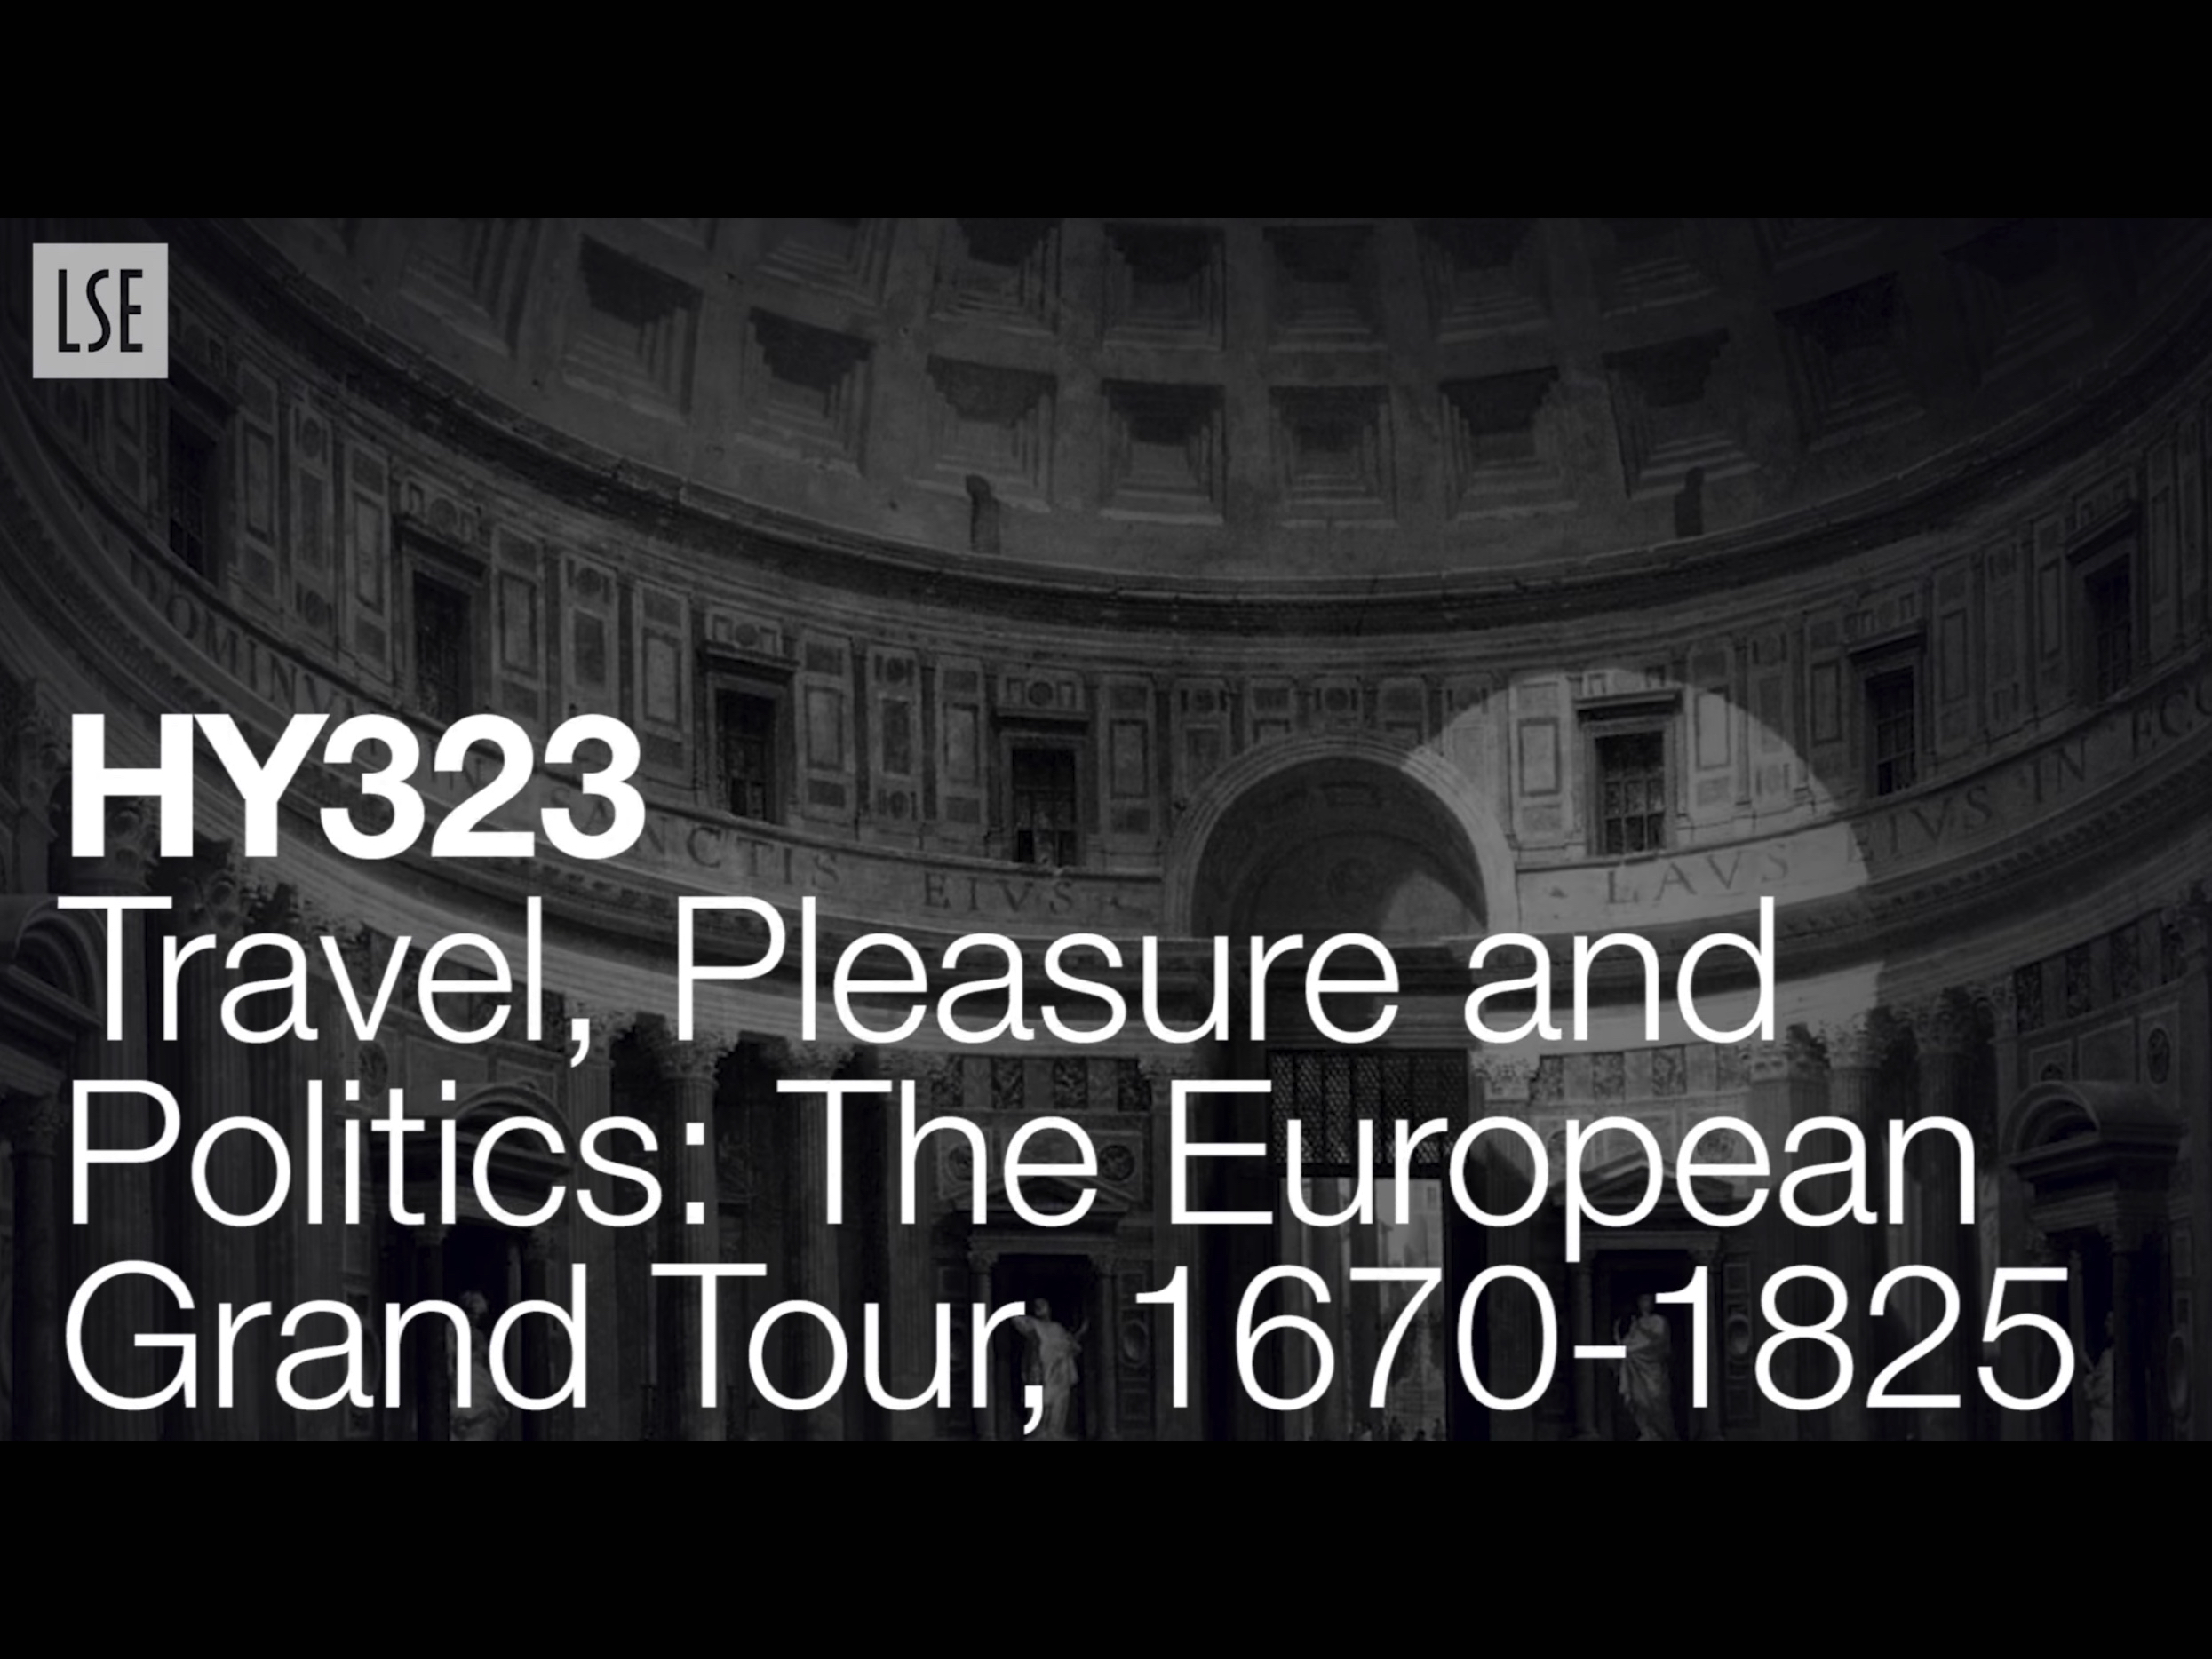 HY323: Travel, Pleasure and Politics: The European Grand Tour, 1670-1825